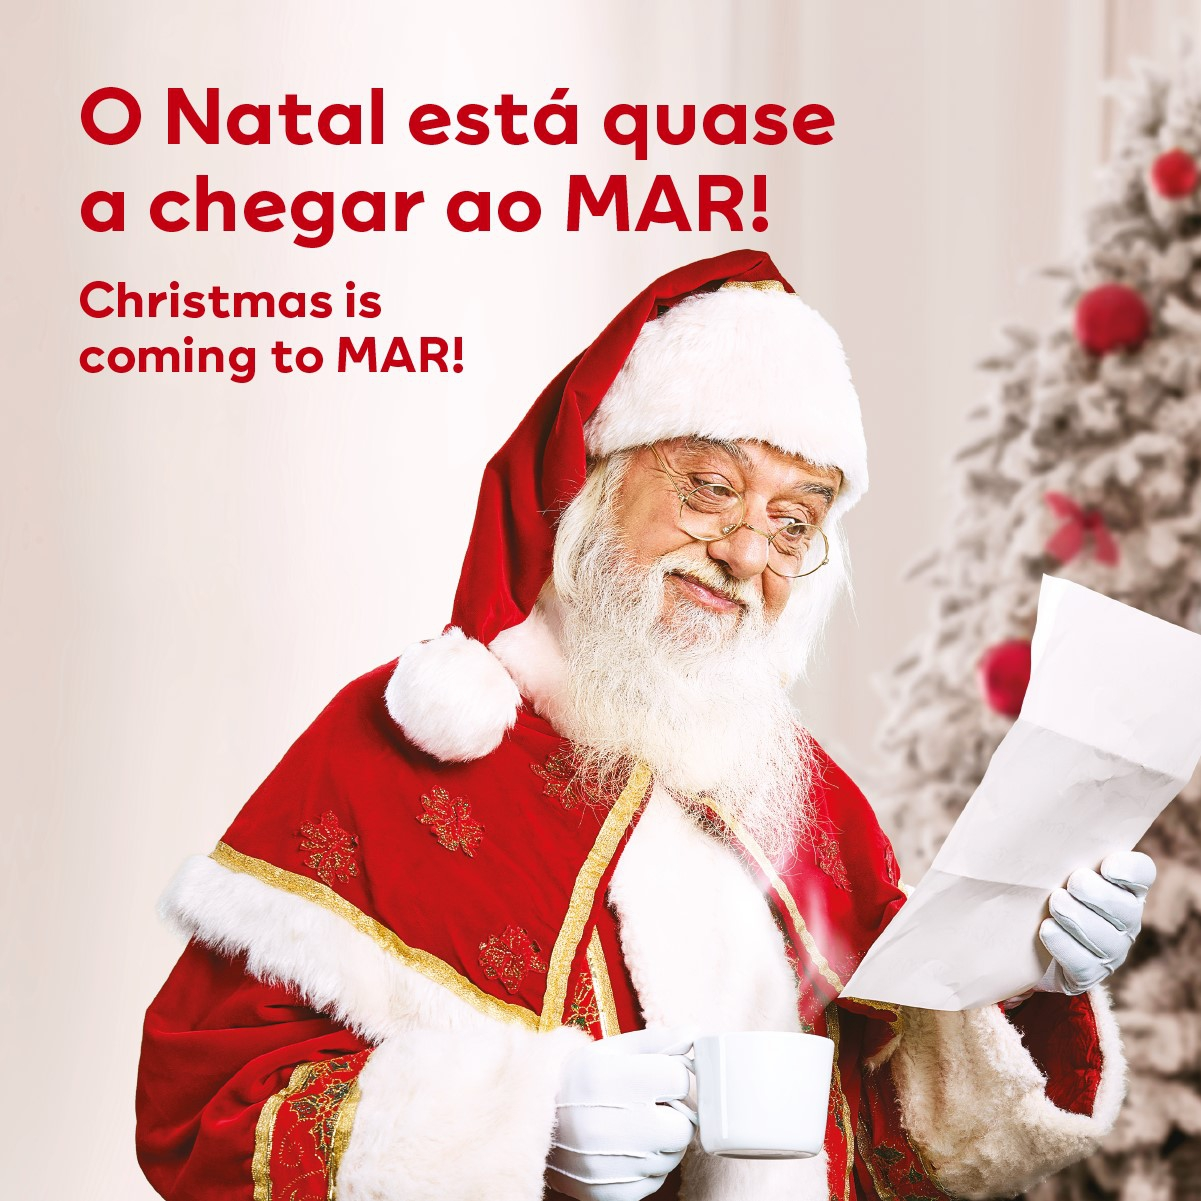 Christmas Magic at MAR Shopping Algarve